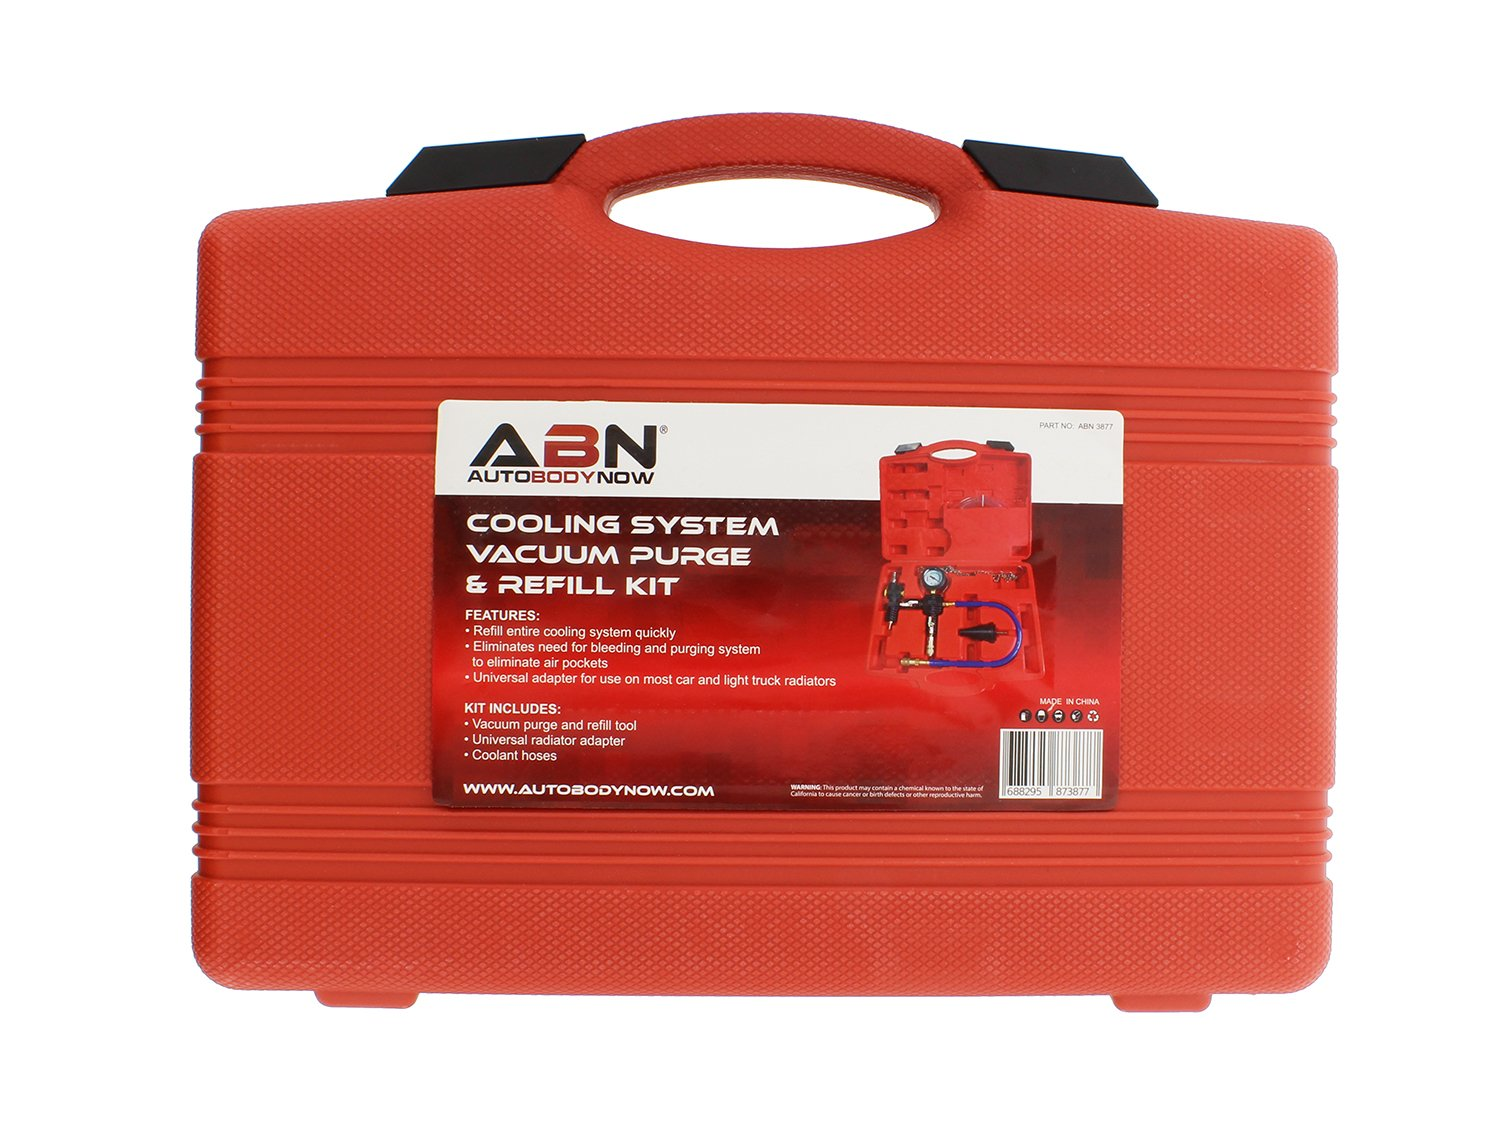 ABN Cooling System Vacuum Purge and Refill Kit with Carrying Case Car Light Truck Radiator 4350283722 Van SUV